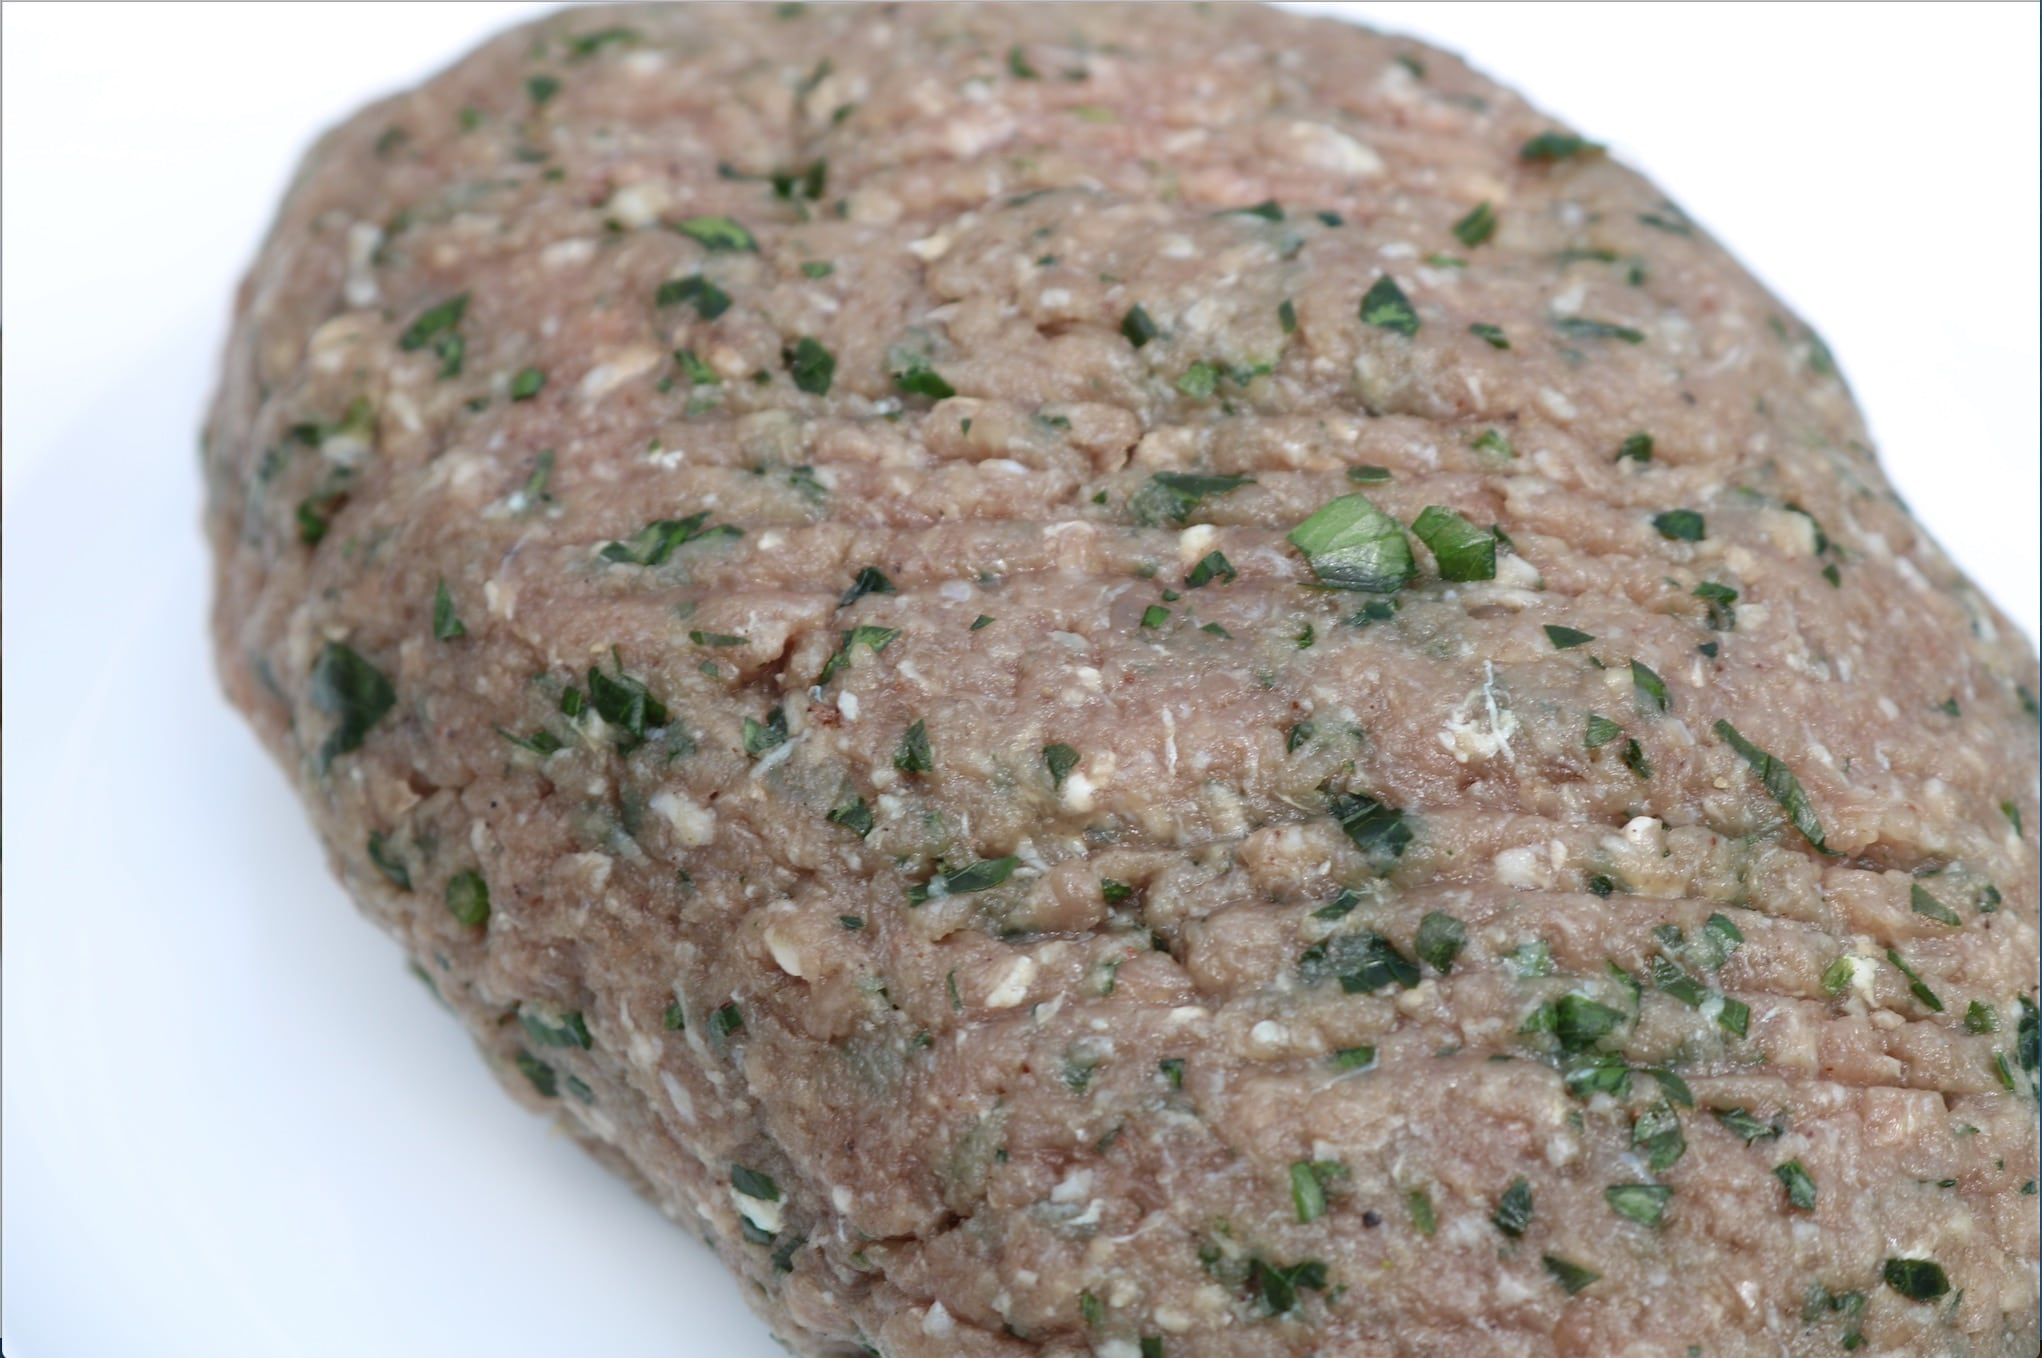 ground beef with herbs and spices